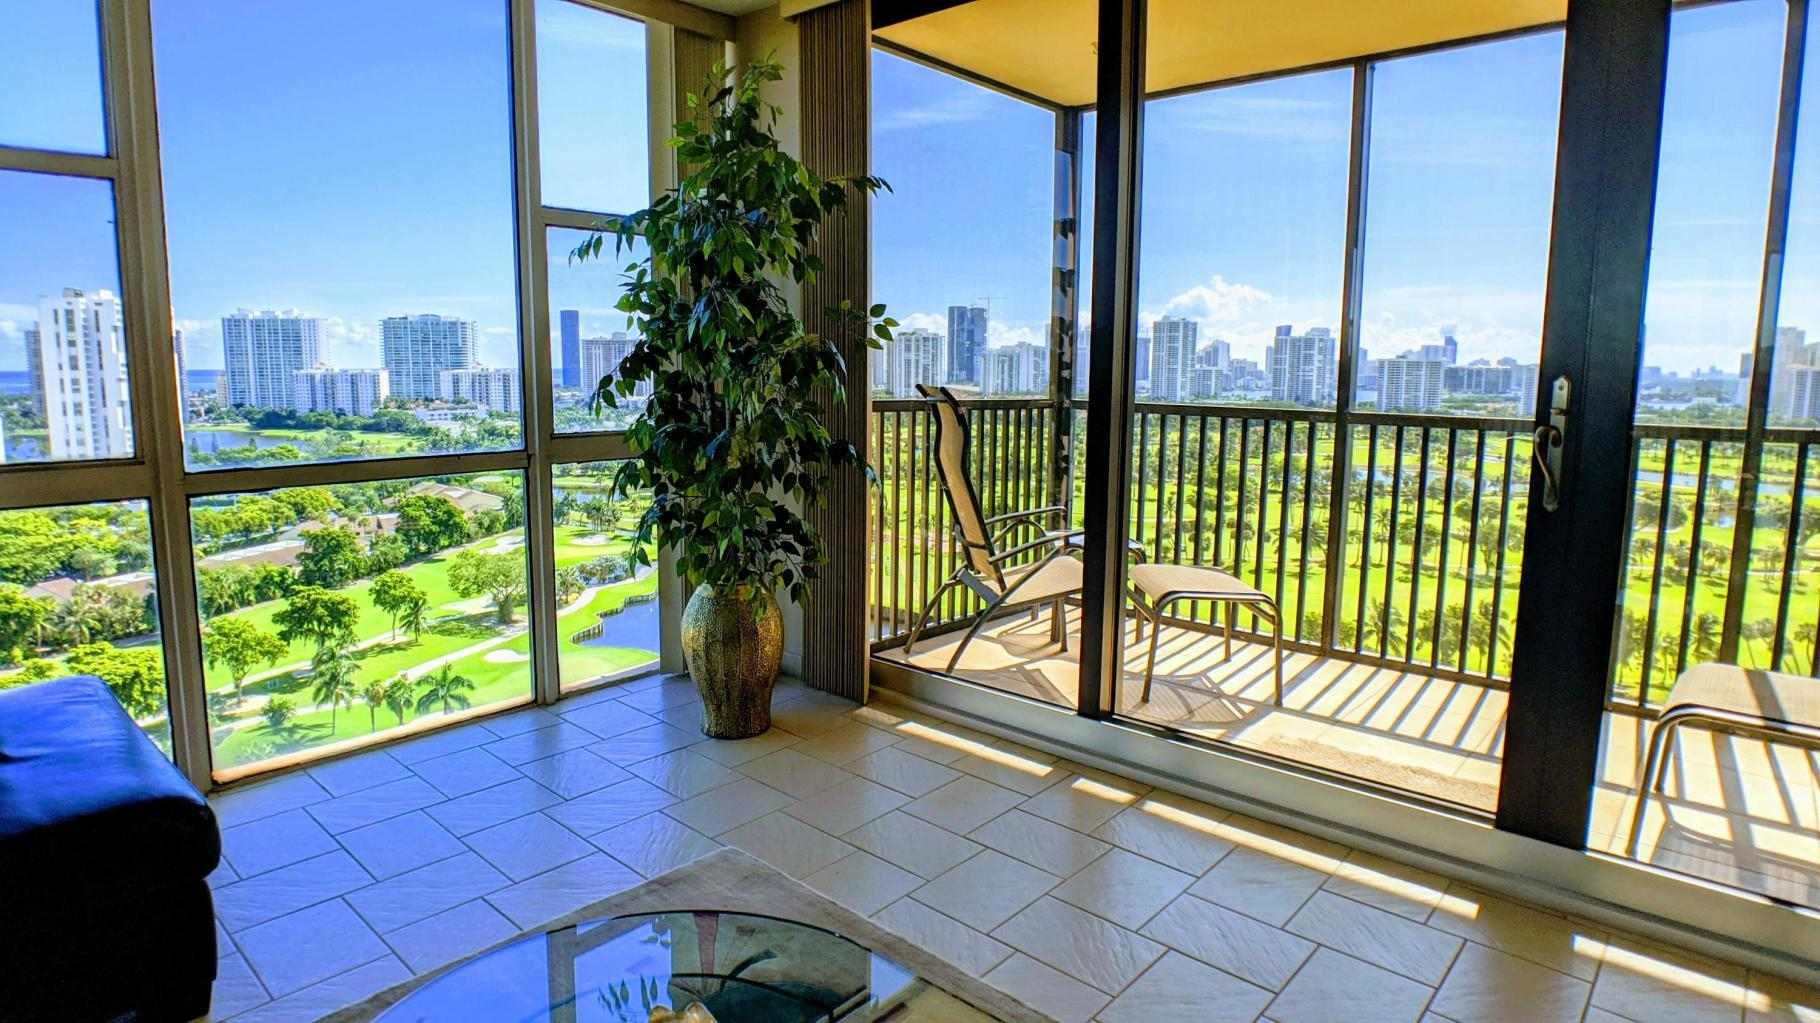 20379 Country Club Drive, Aventura, Florida 33180, 2 Bedrooms Bedrooms, ,2 BathroomsBathrooms,Residential,For Sale,Country Club,RX-10602533